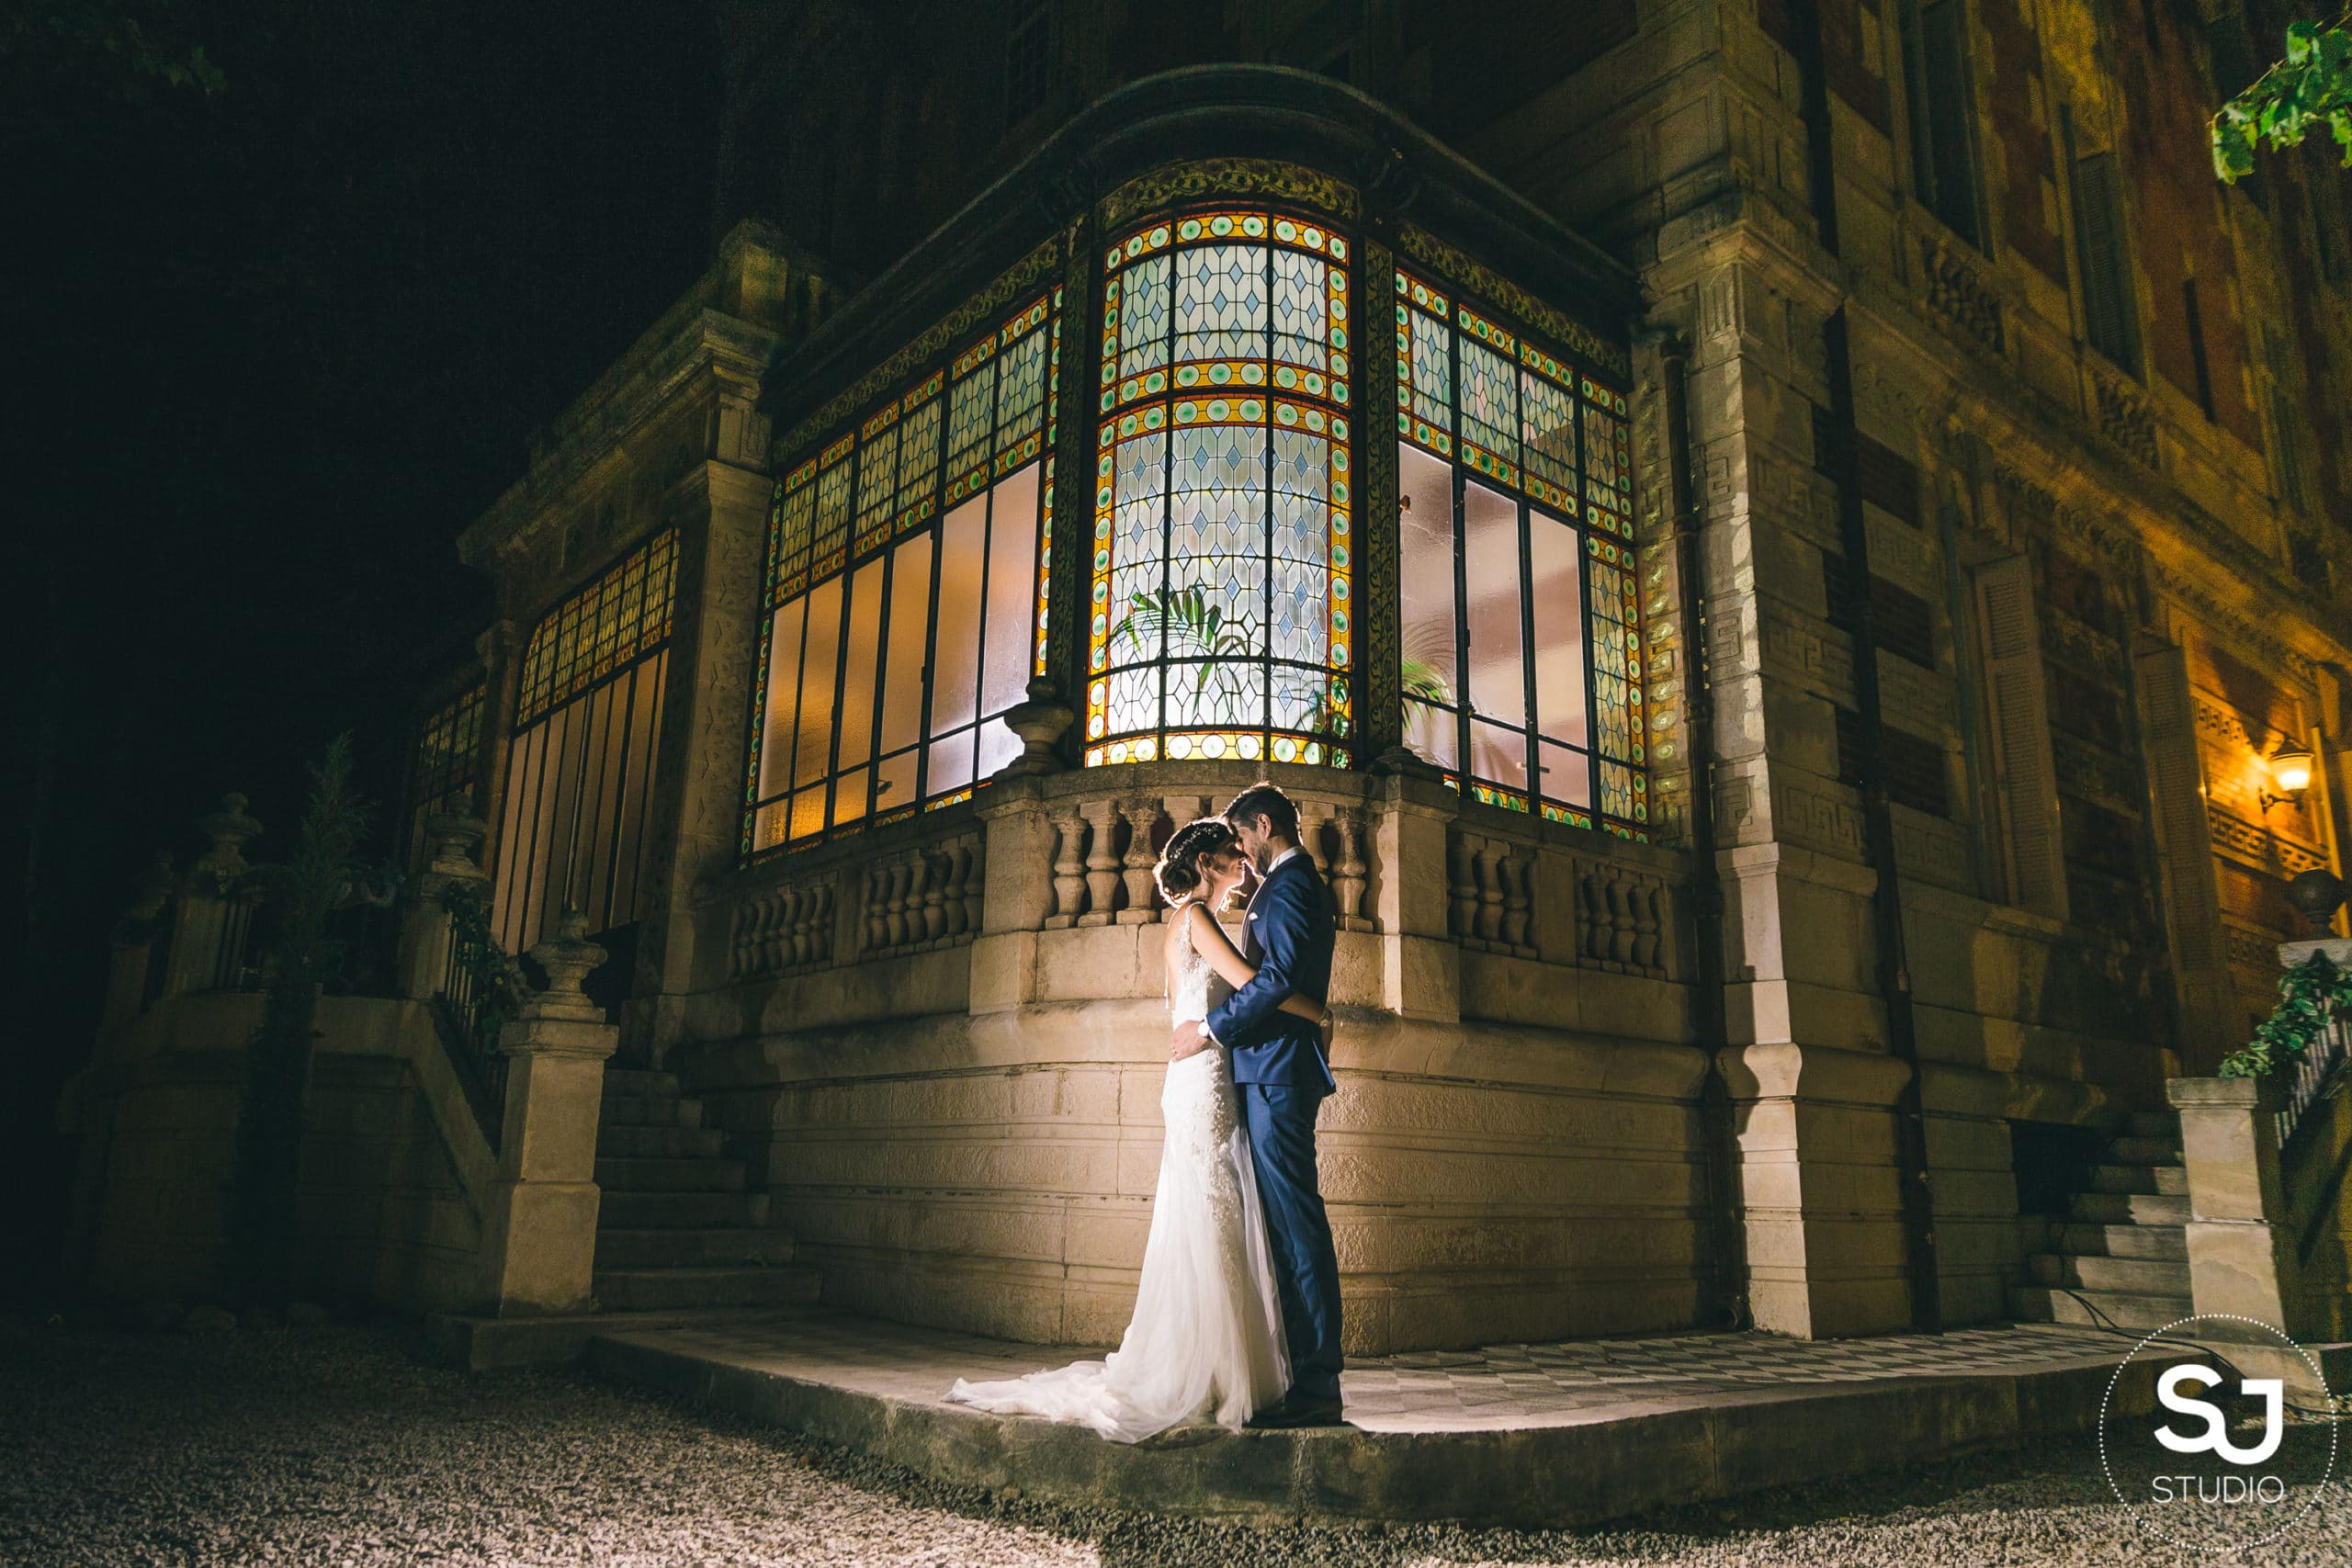 bride-groom-couple-conservatory-wedding-chateau-venue-reception-south-france-provence-magic